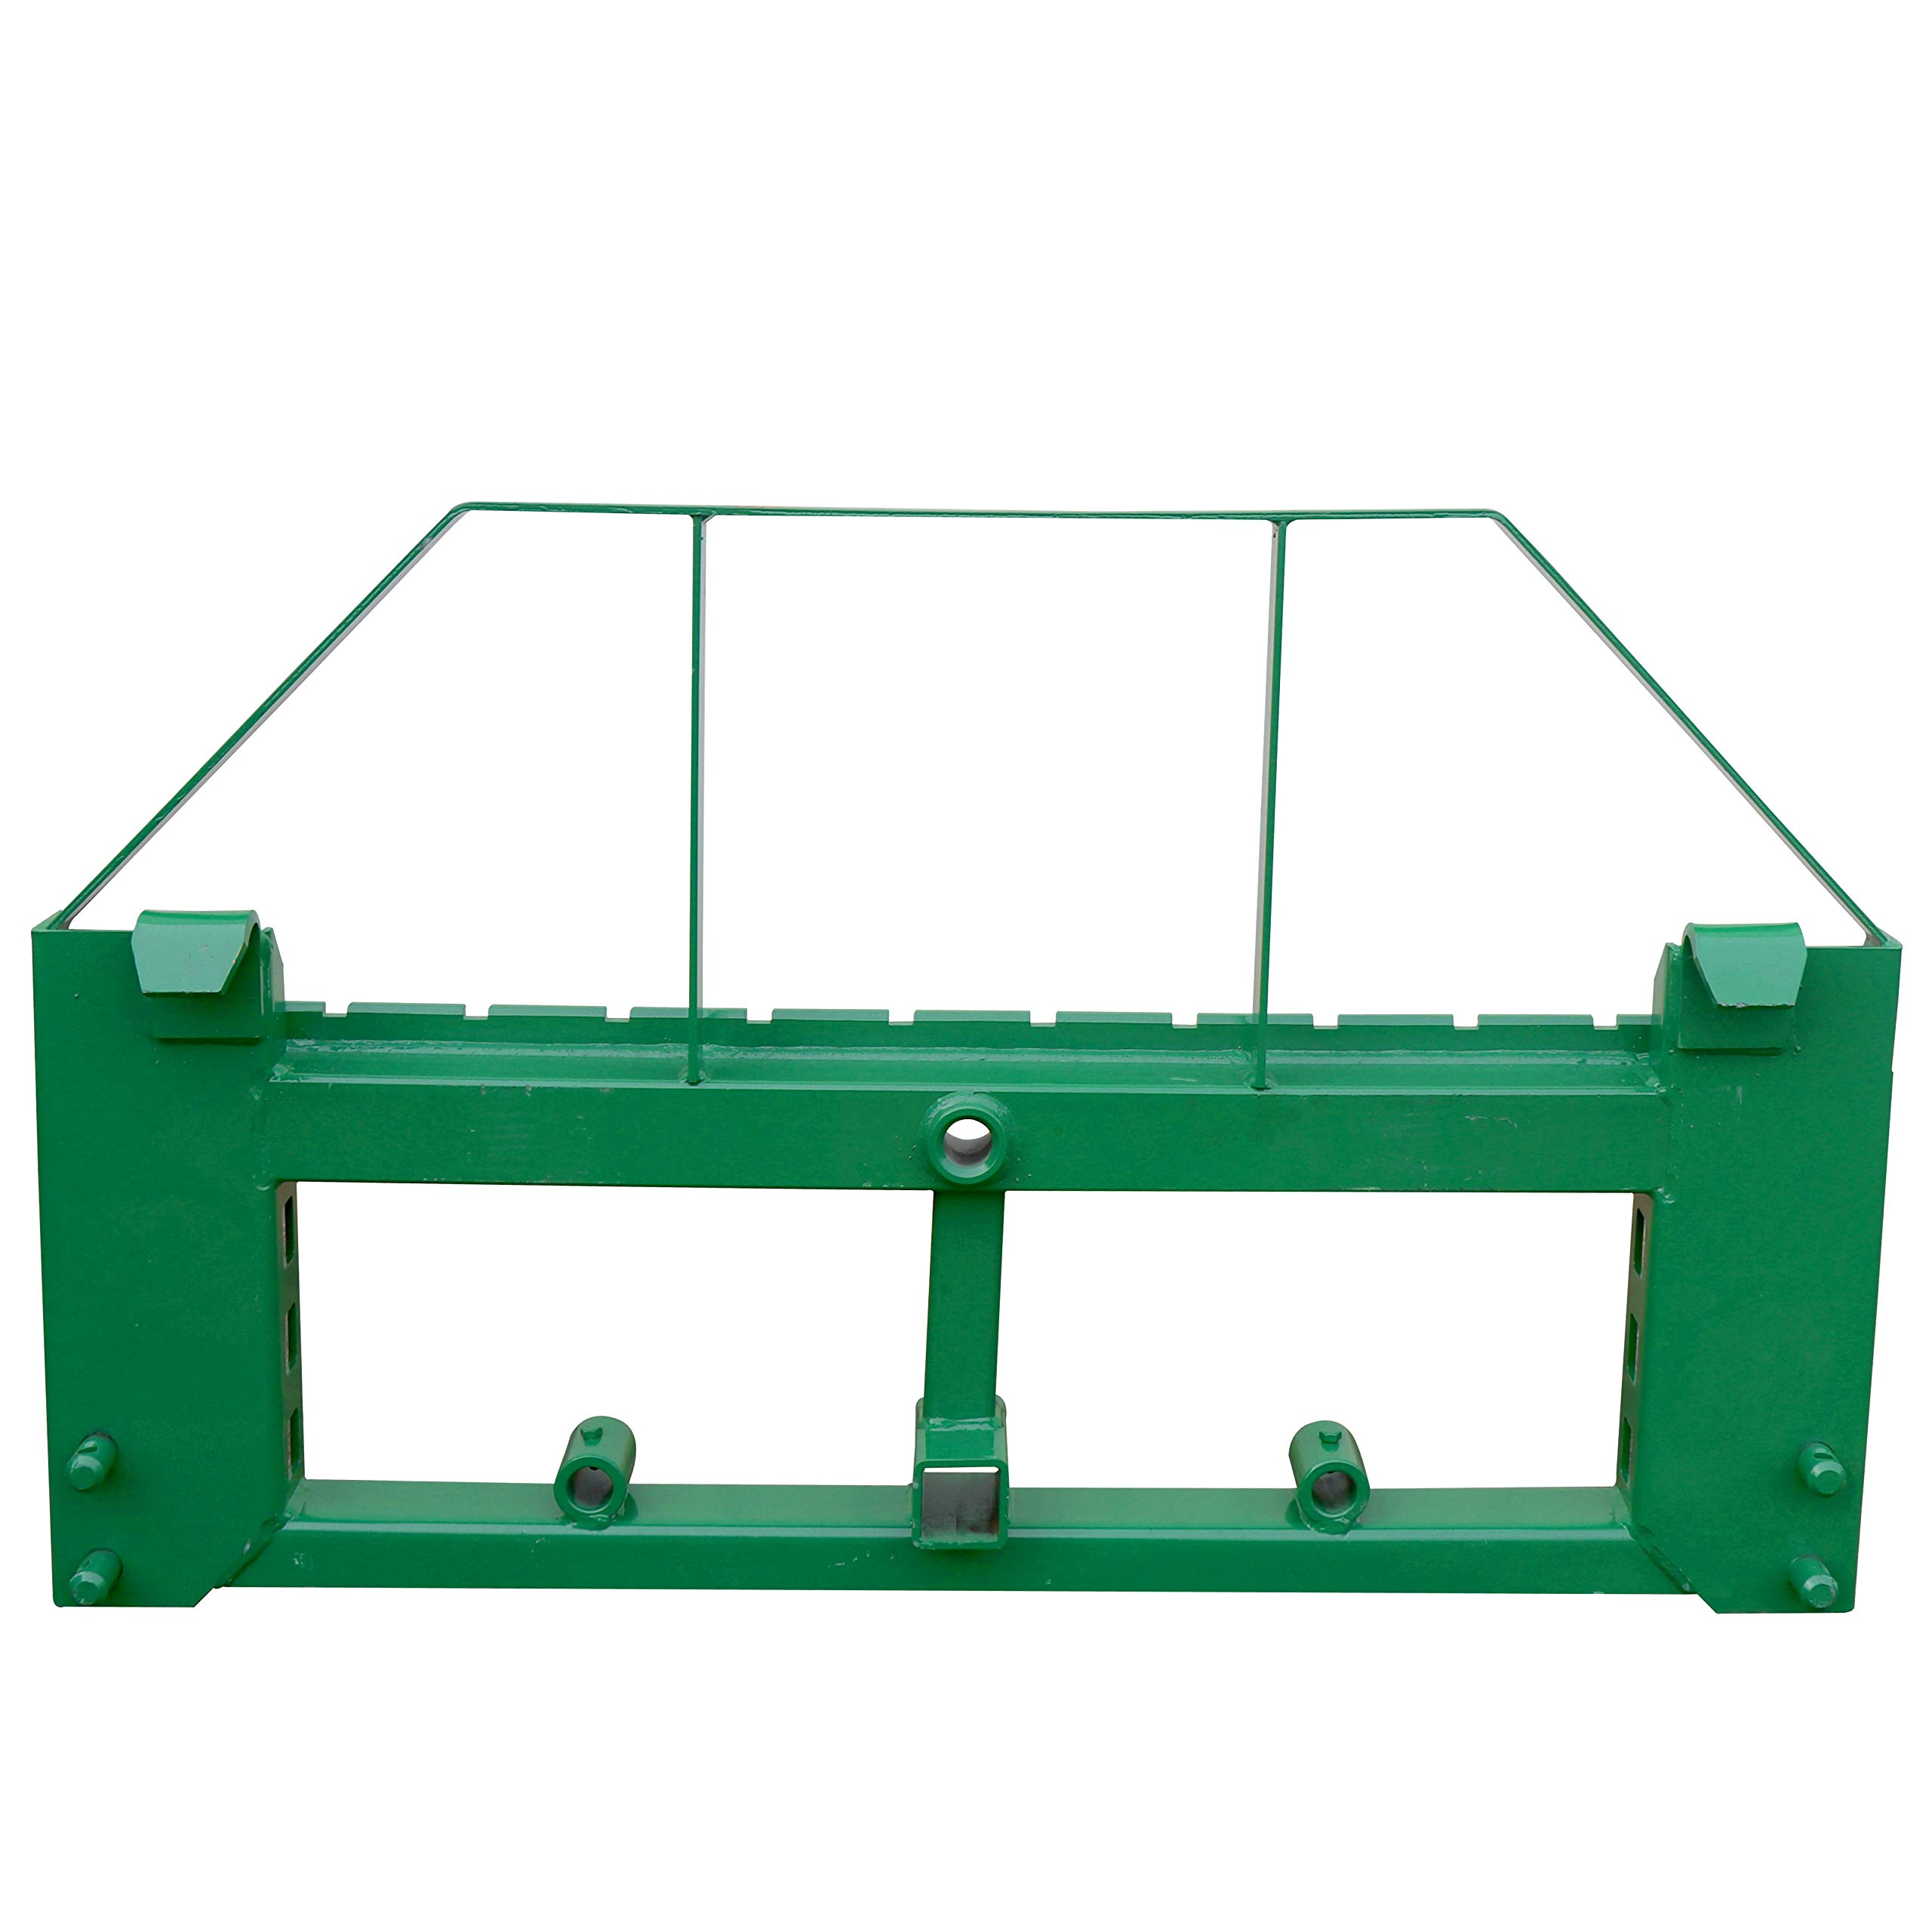 Titan Pallet Fork Frame |Fits John Deere|2'' Hitch|Spear Sleeves|Headache Rack by Titan Distributors Inc.